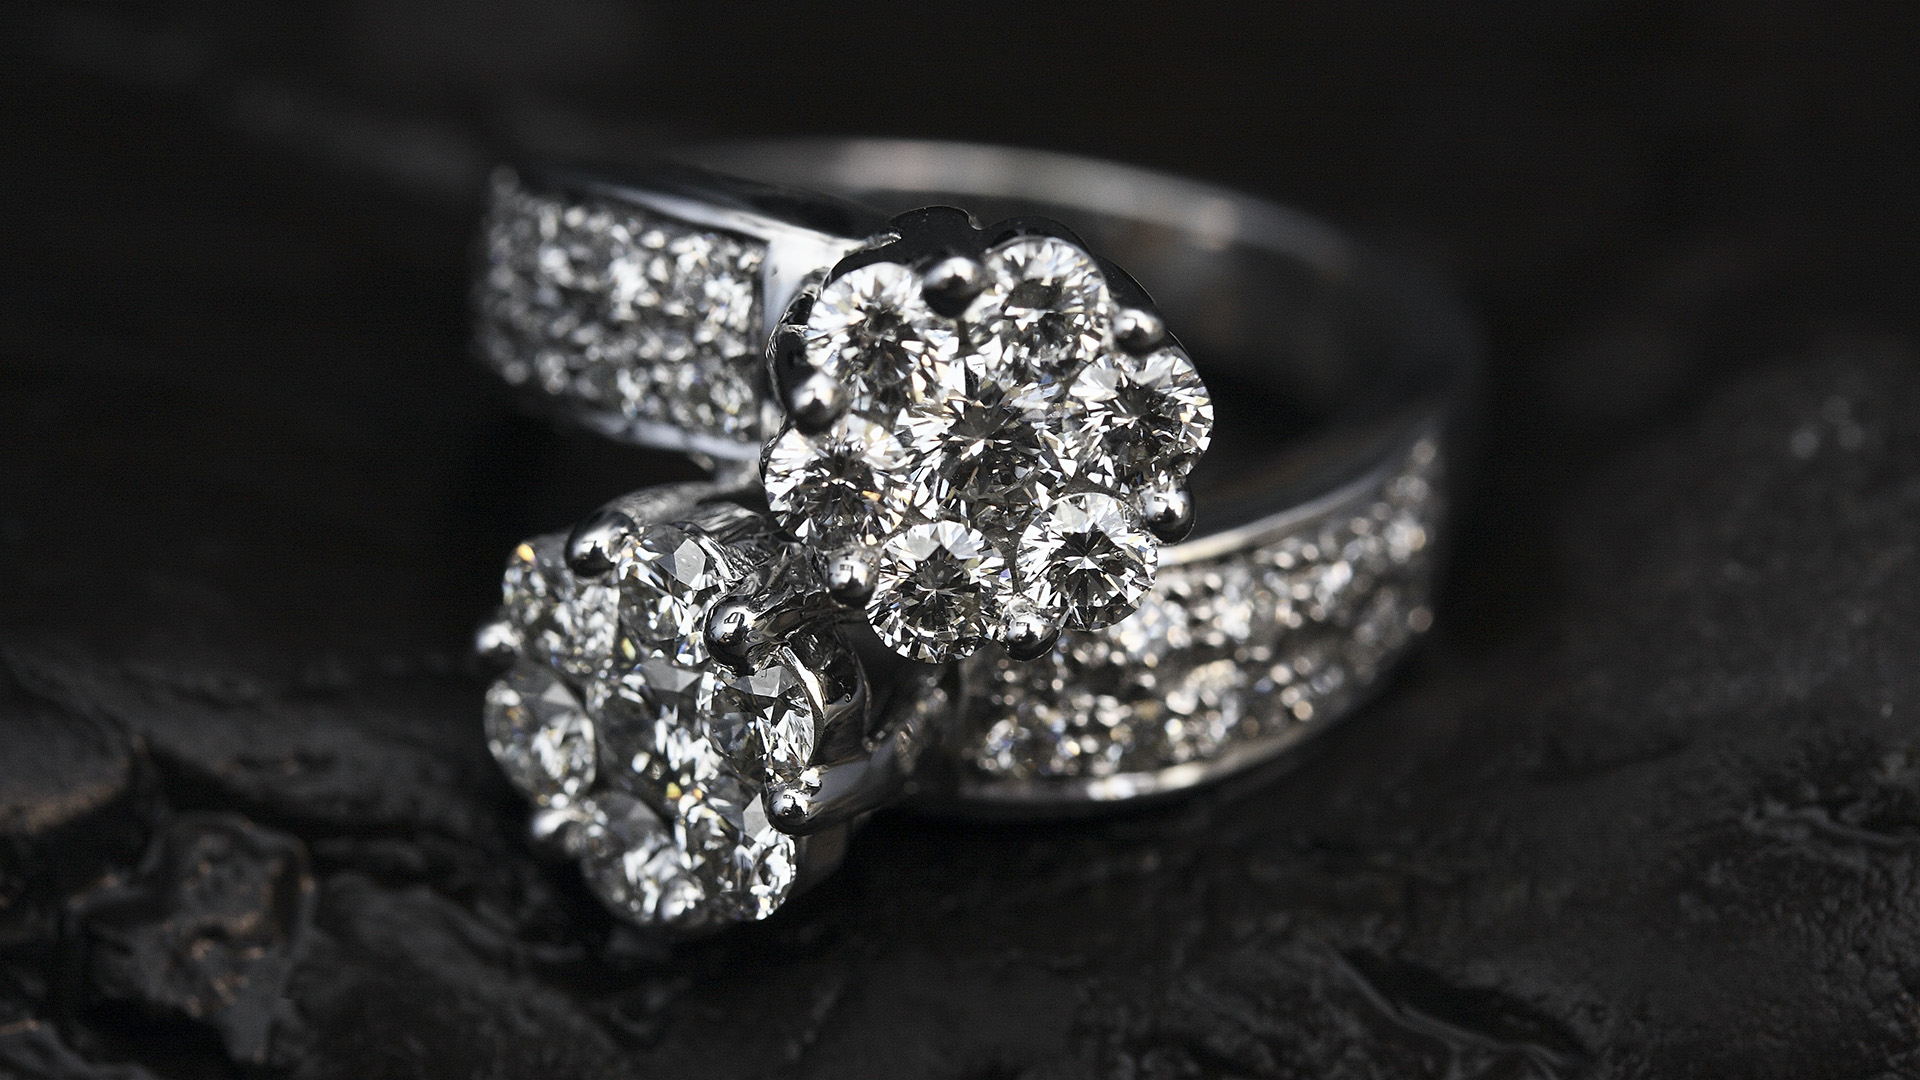 Ethical, Green Concerns Make Jewelry Firms Look Towards Lab Diamonds